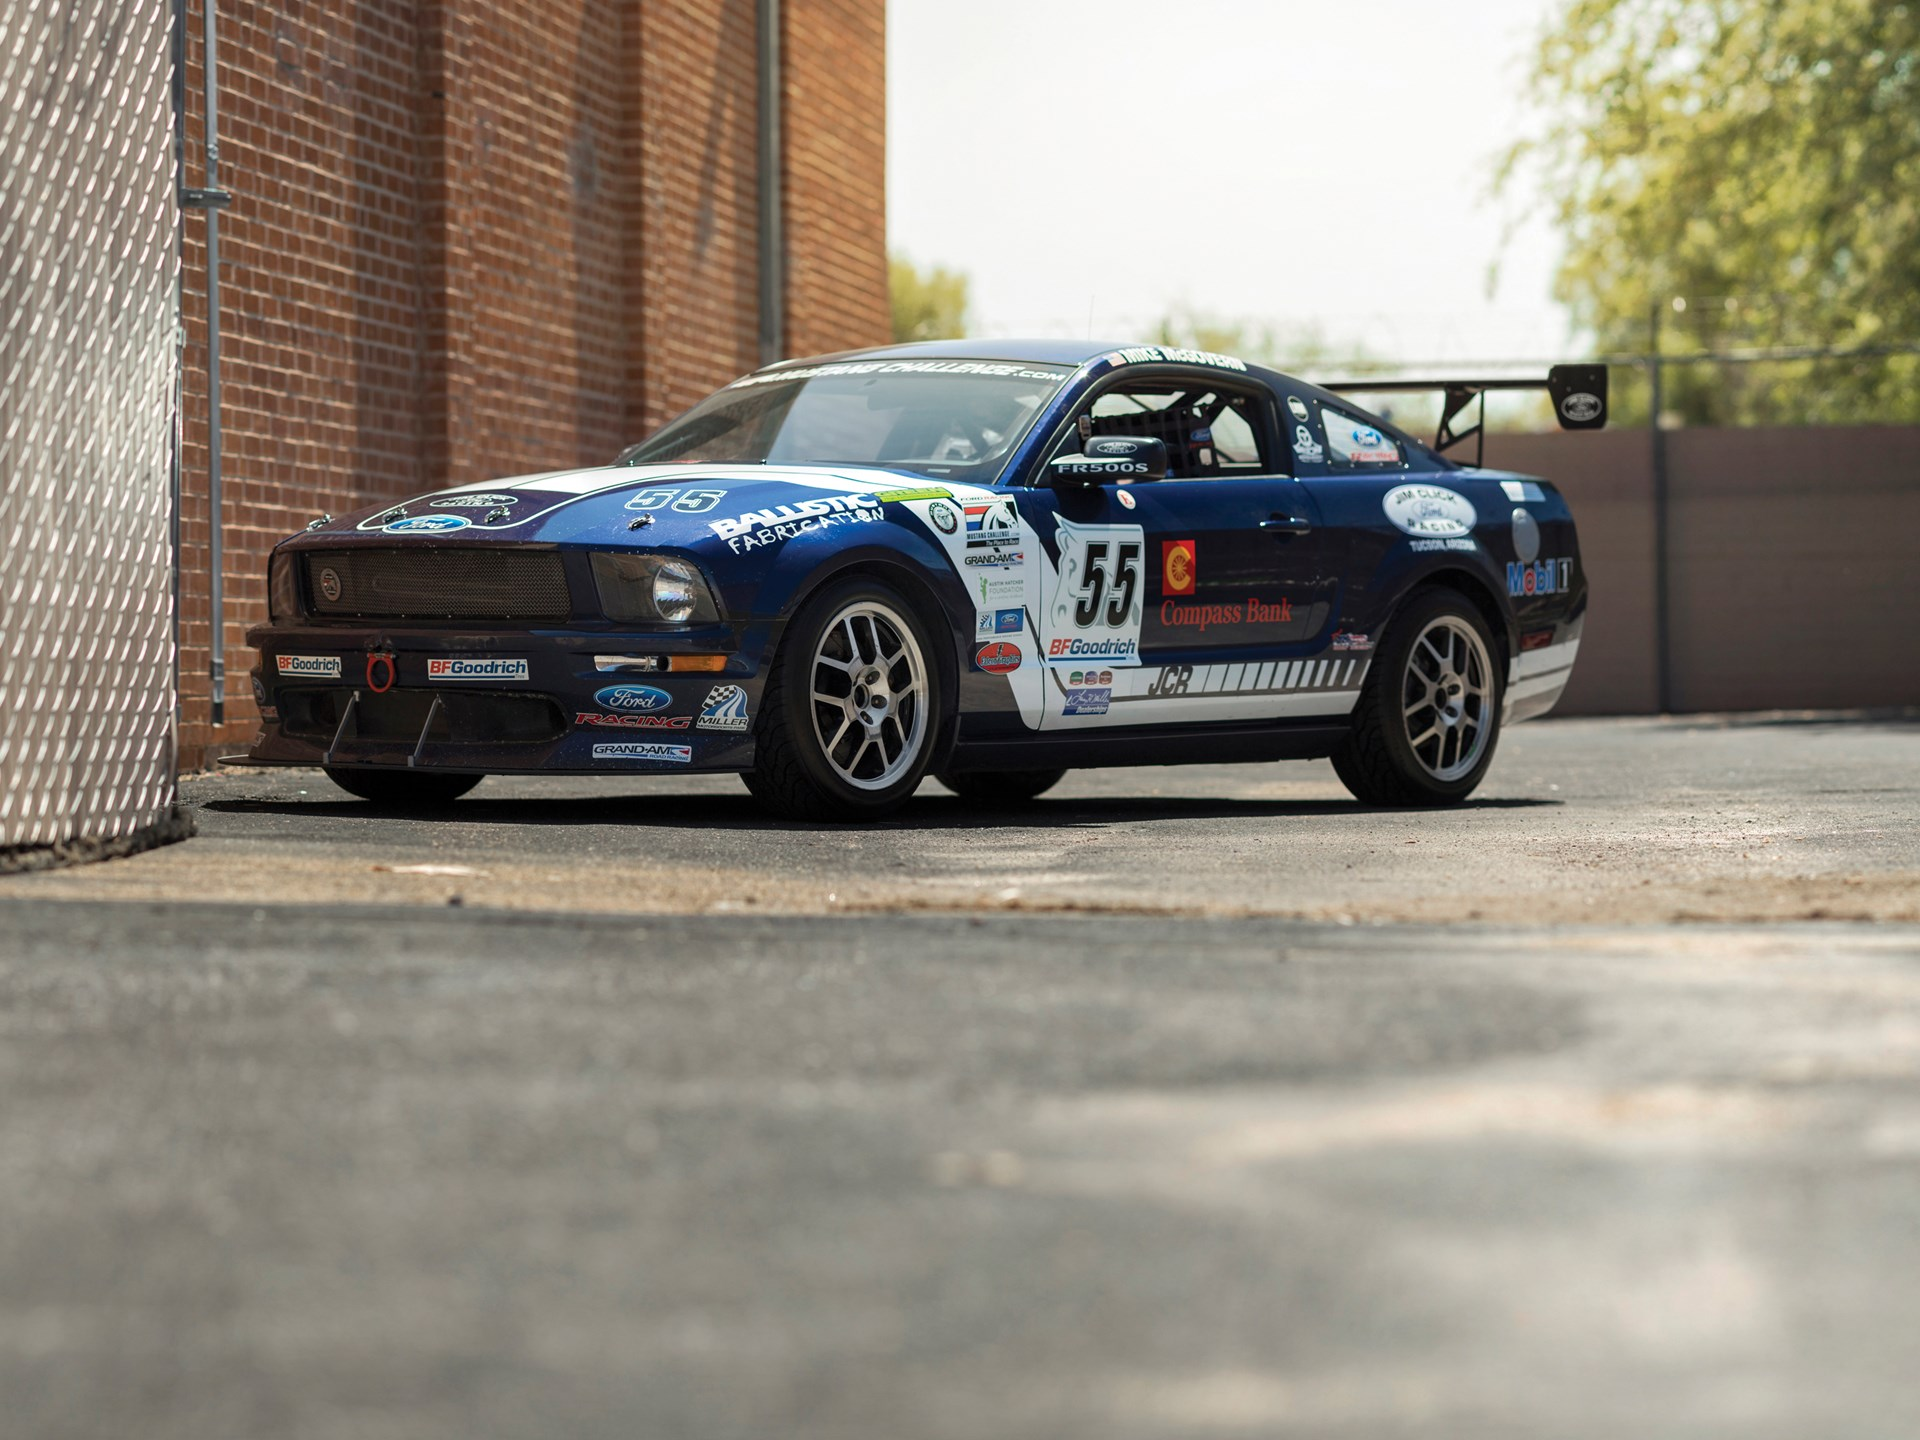 2008 Ford Mustang FR500S